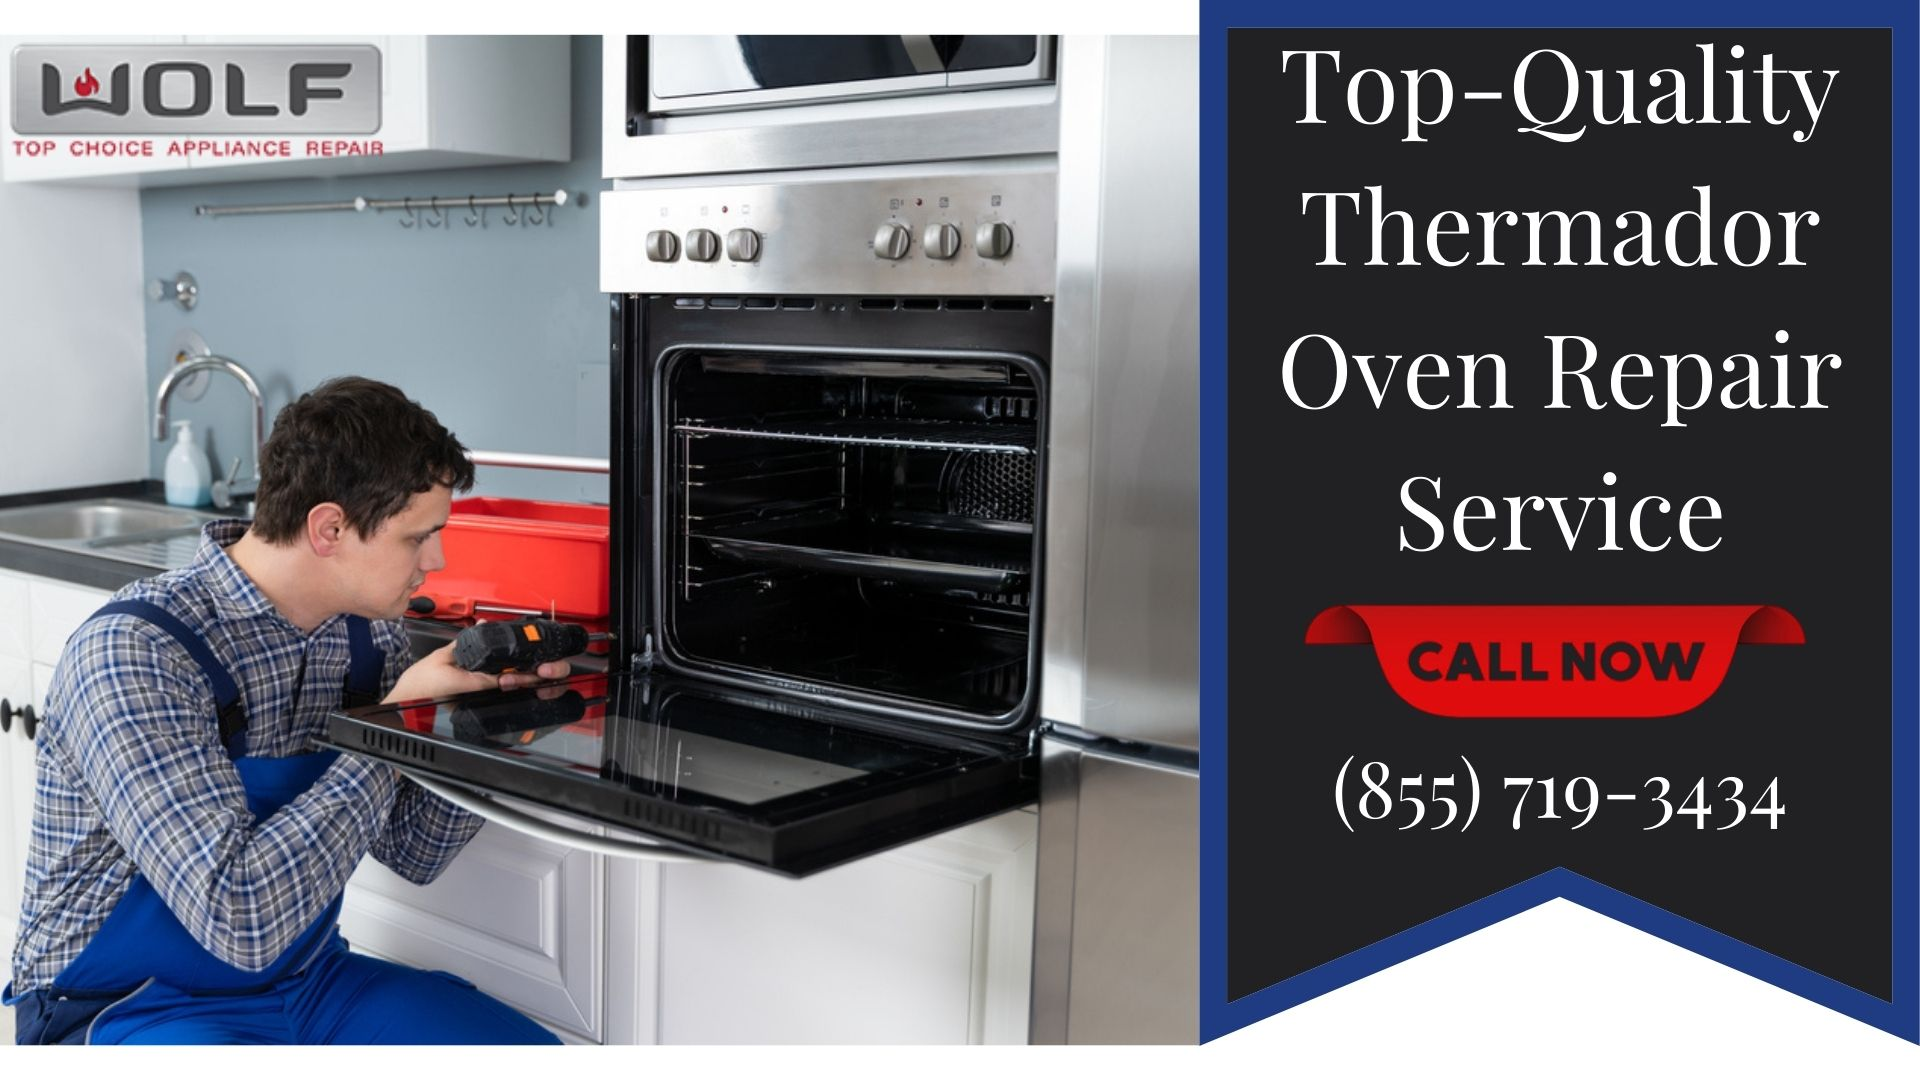 Get Top-Quality Thermador Oven Repair Service